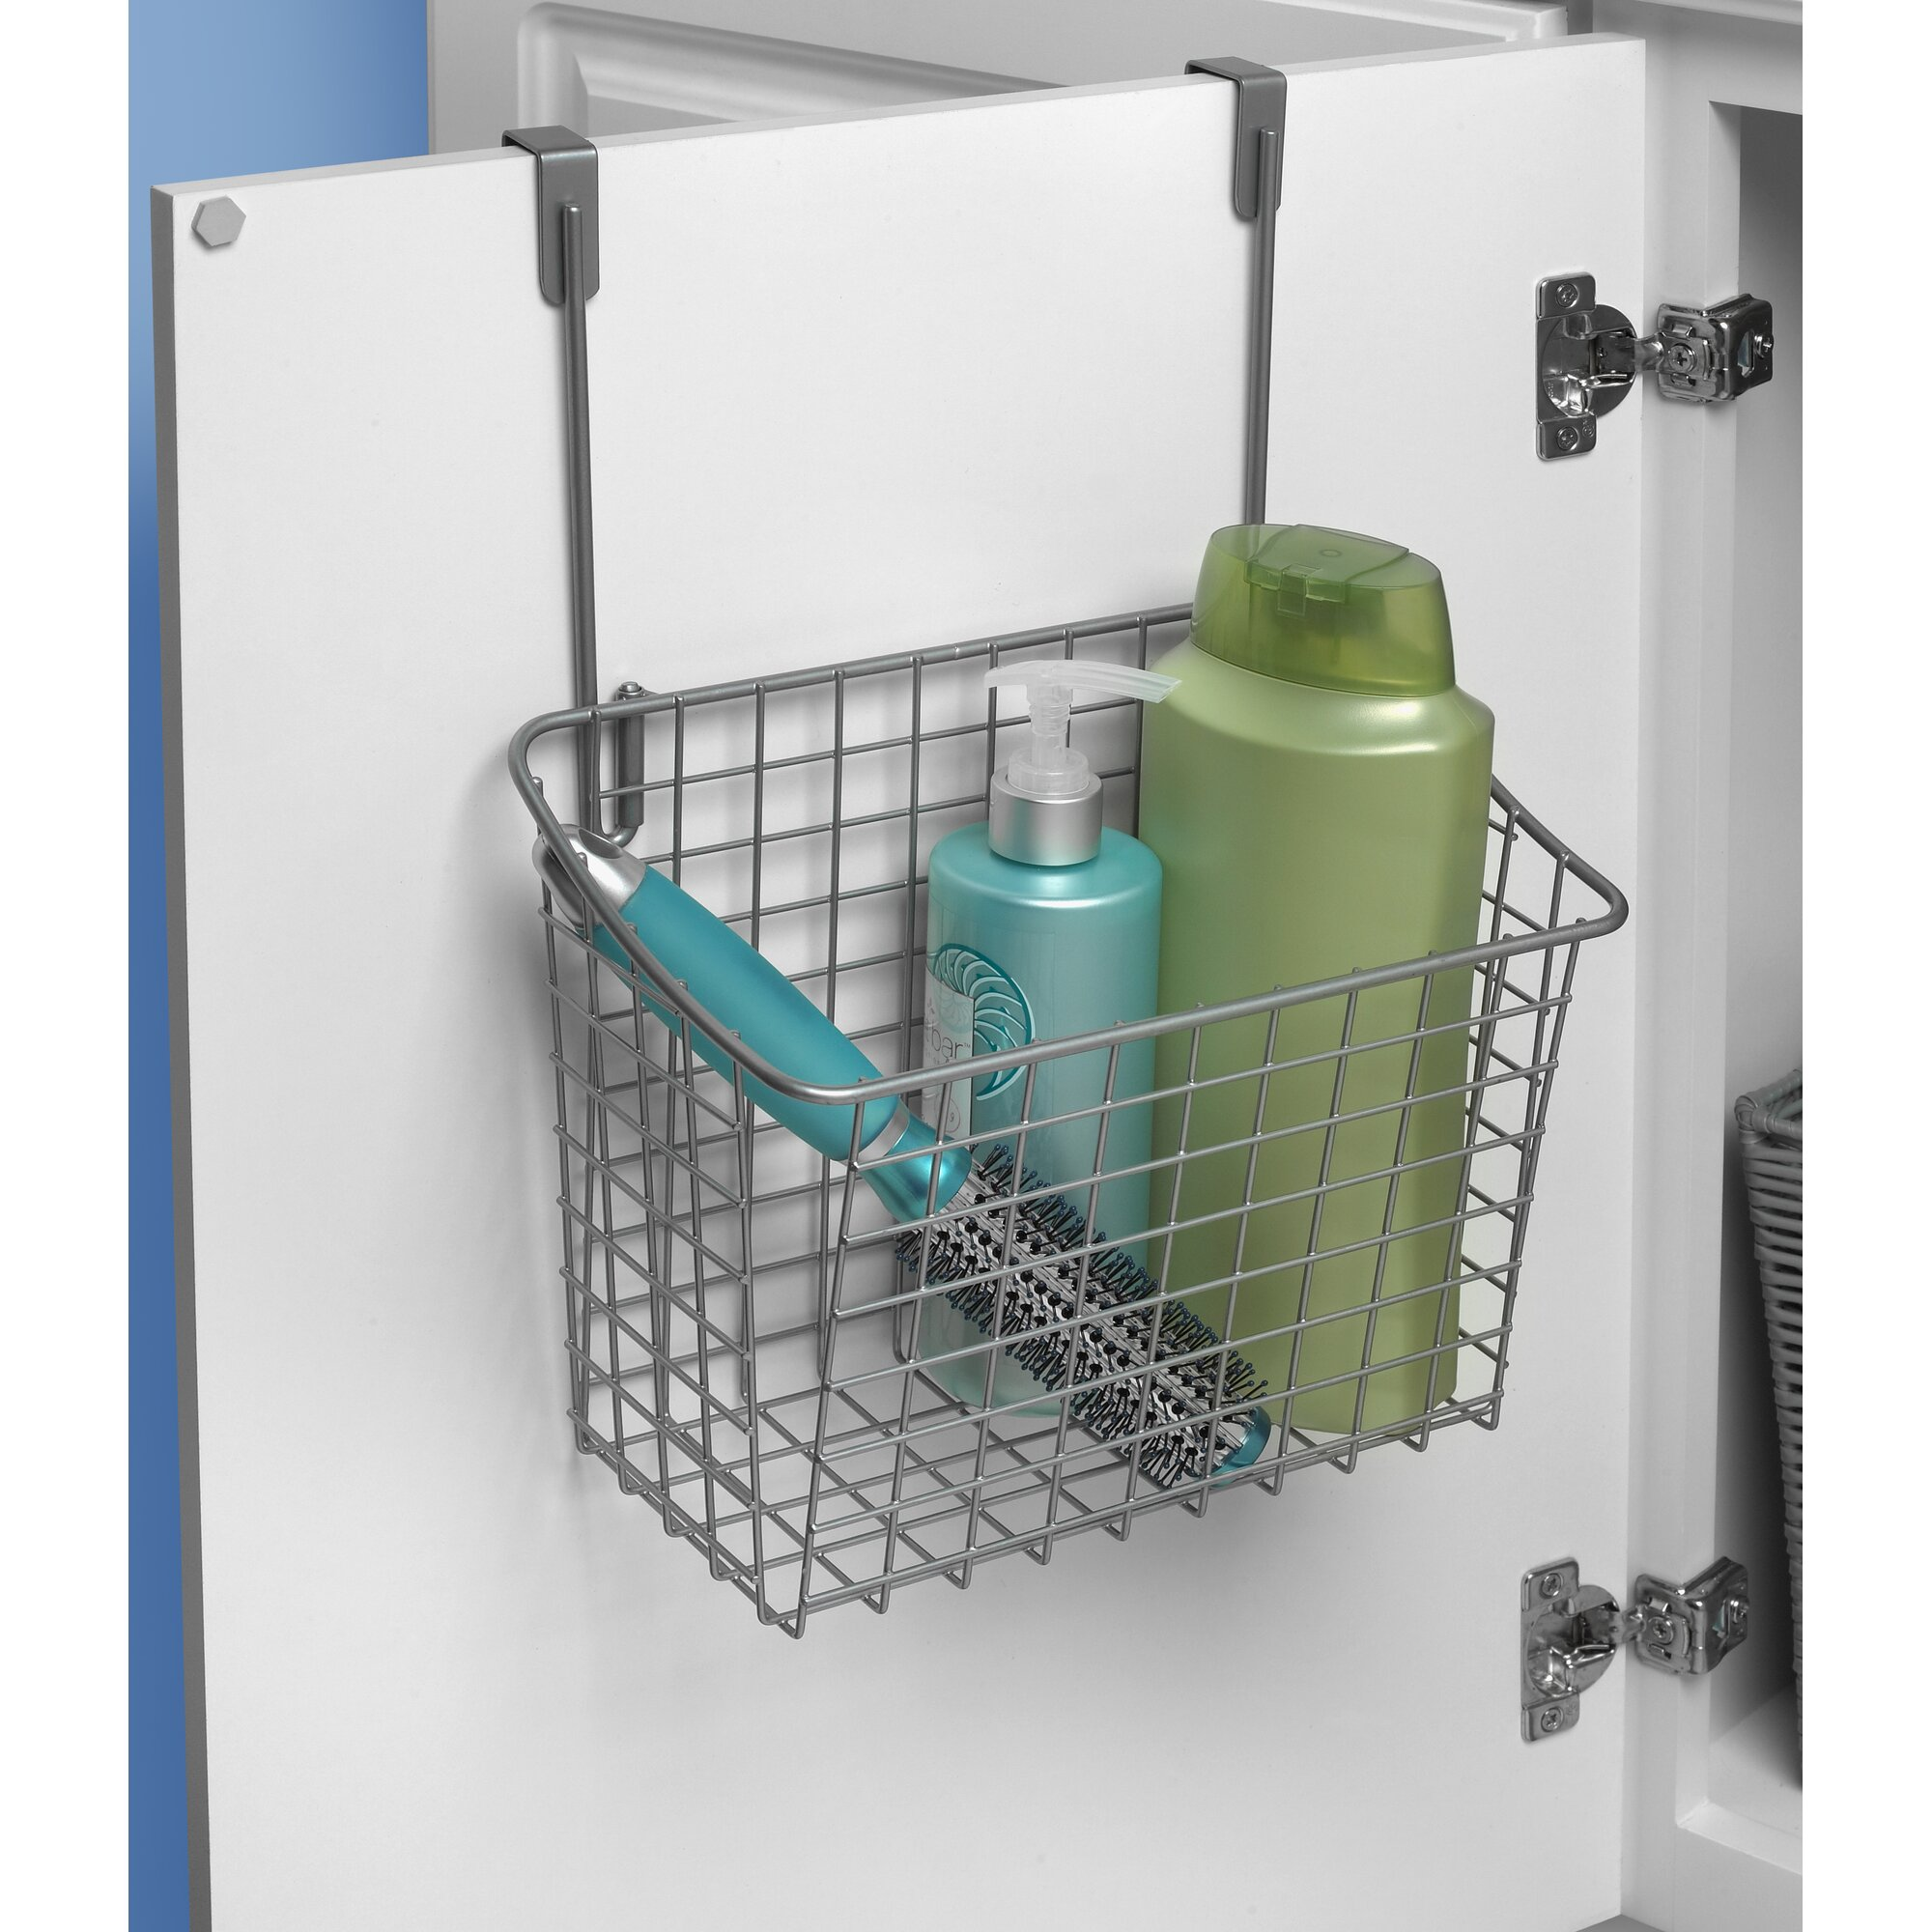 Bathroom cabinet door organizer - Large Over The Cabinet Door Organizer